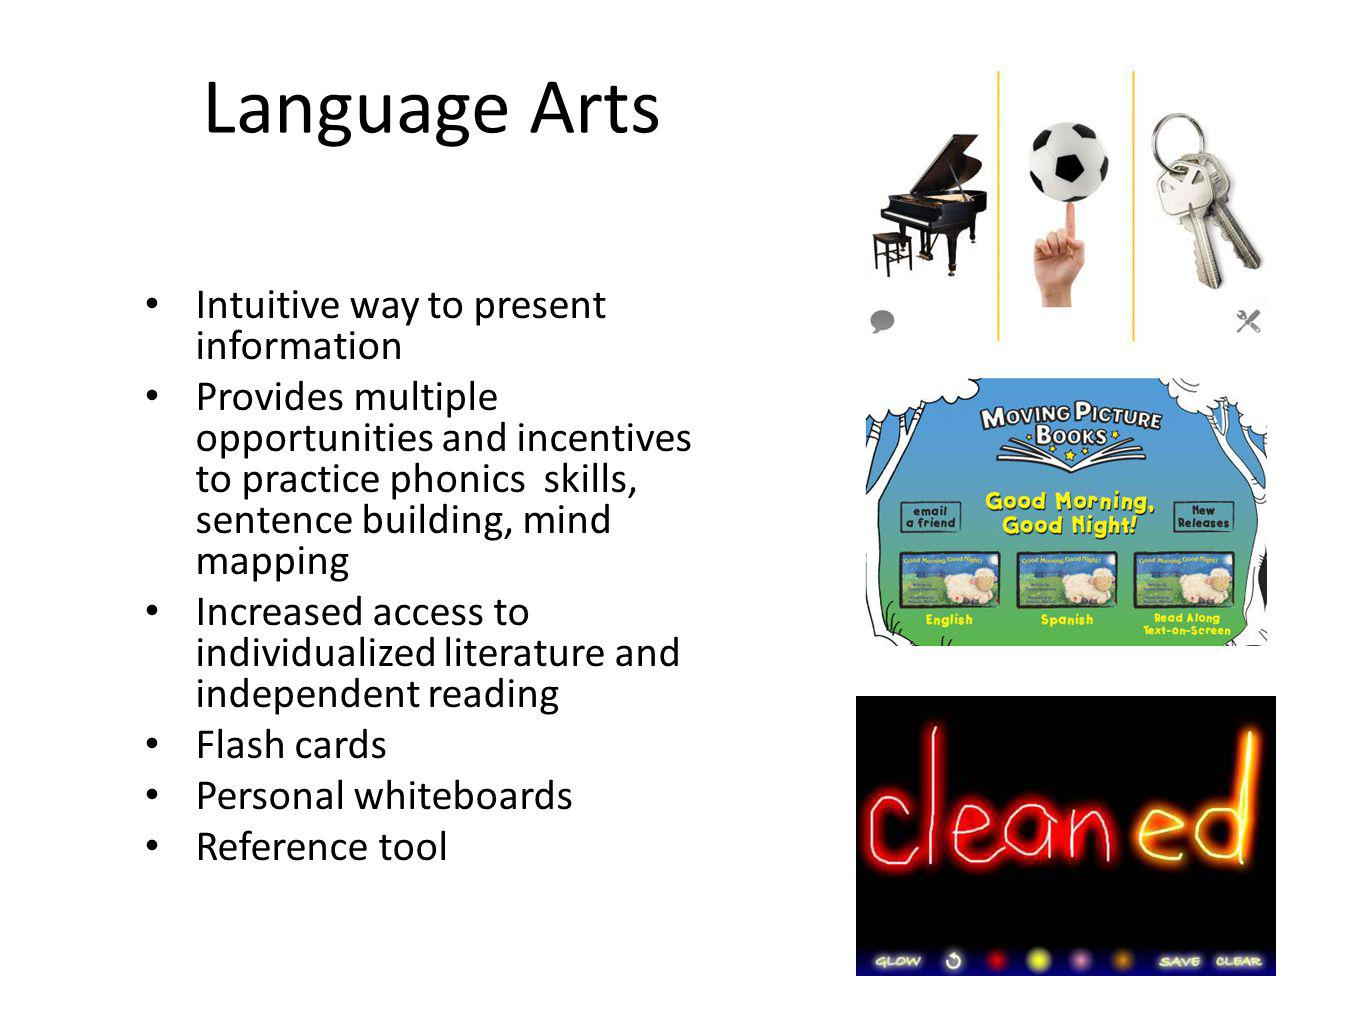 Language Arts Intuitive way to present information Provides multiple opportunities and incentives to practice phonics skills, sentence building, mind